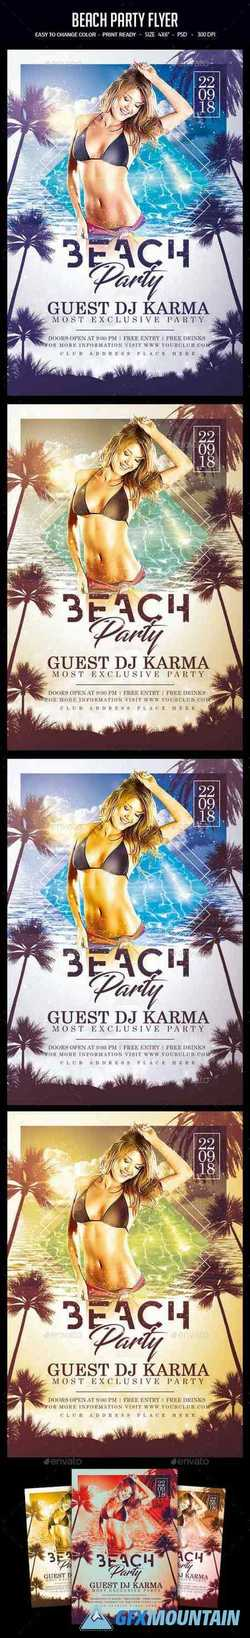 Beach Party Flyer 22541859